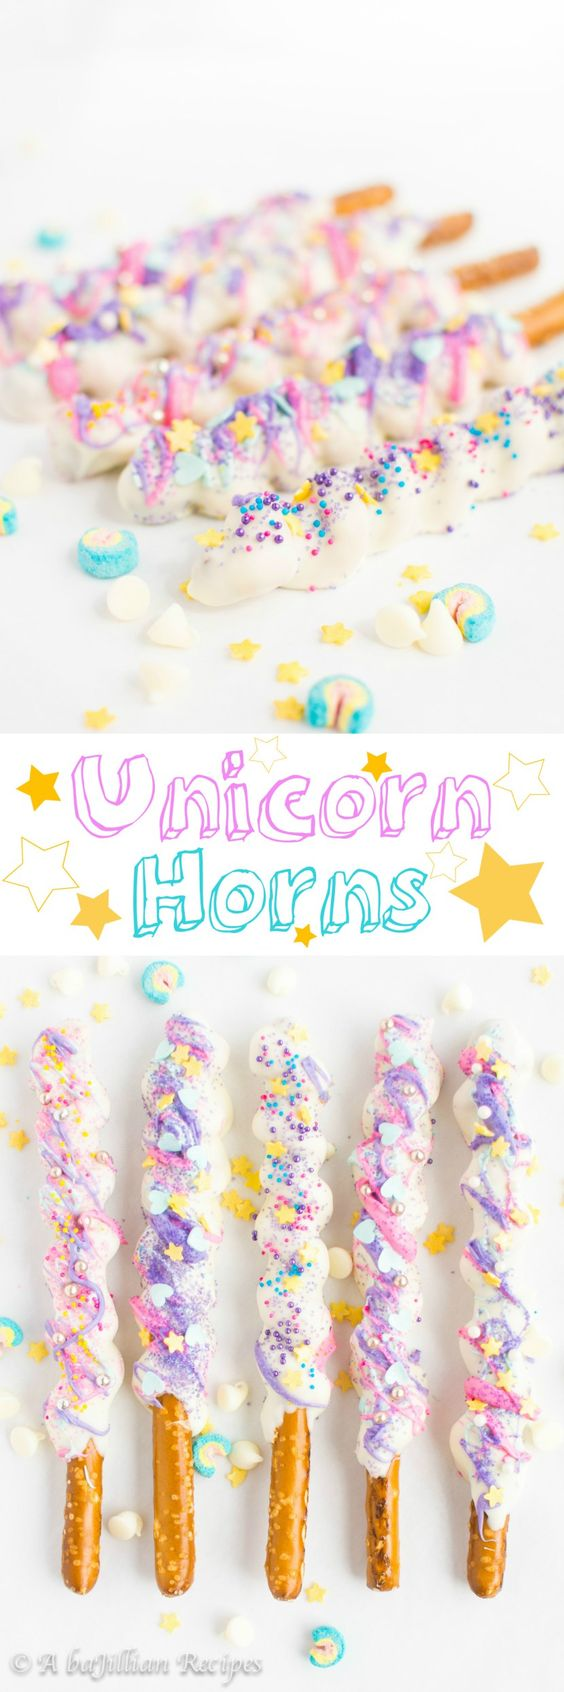 Unicorn desserts for a unicorn party: Unicorn Horns